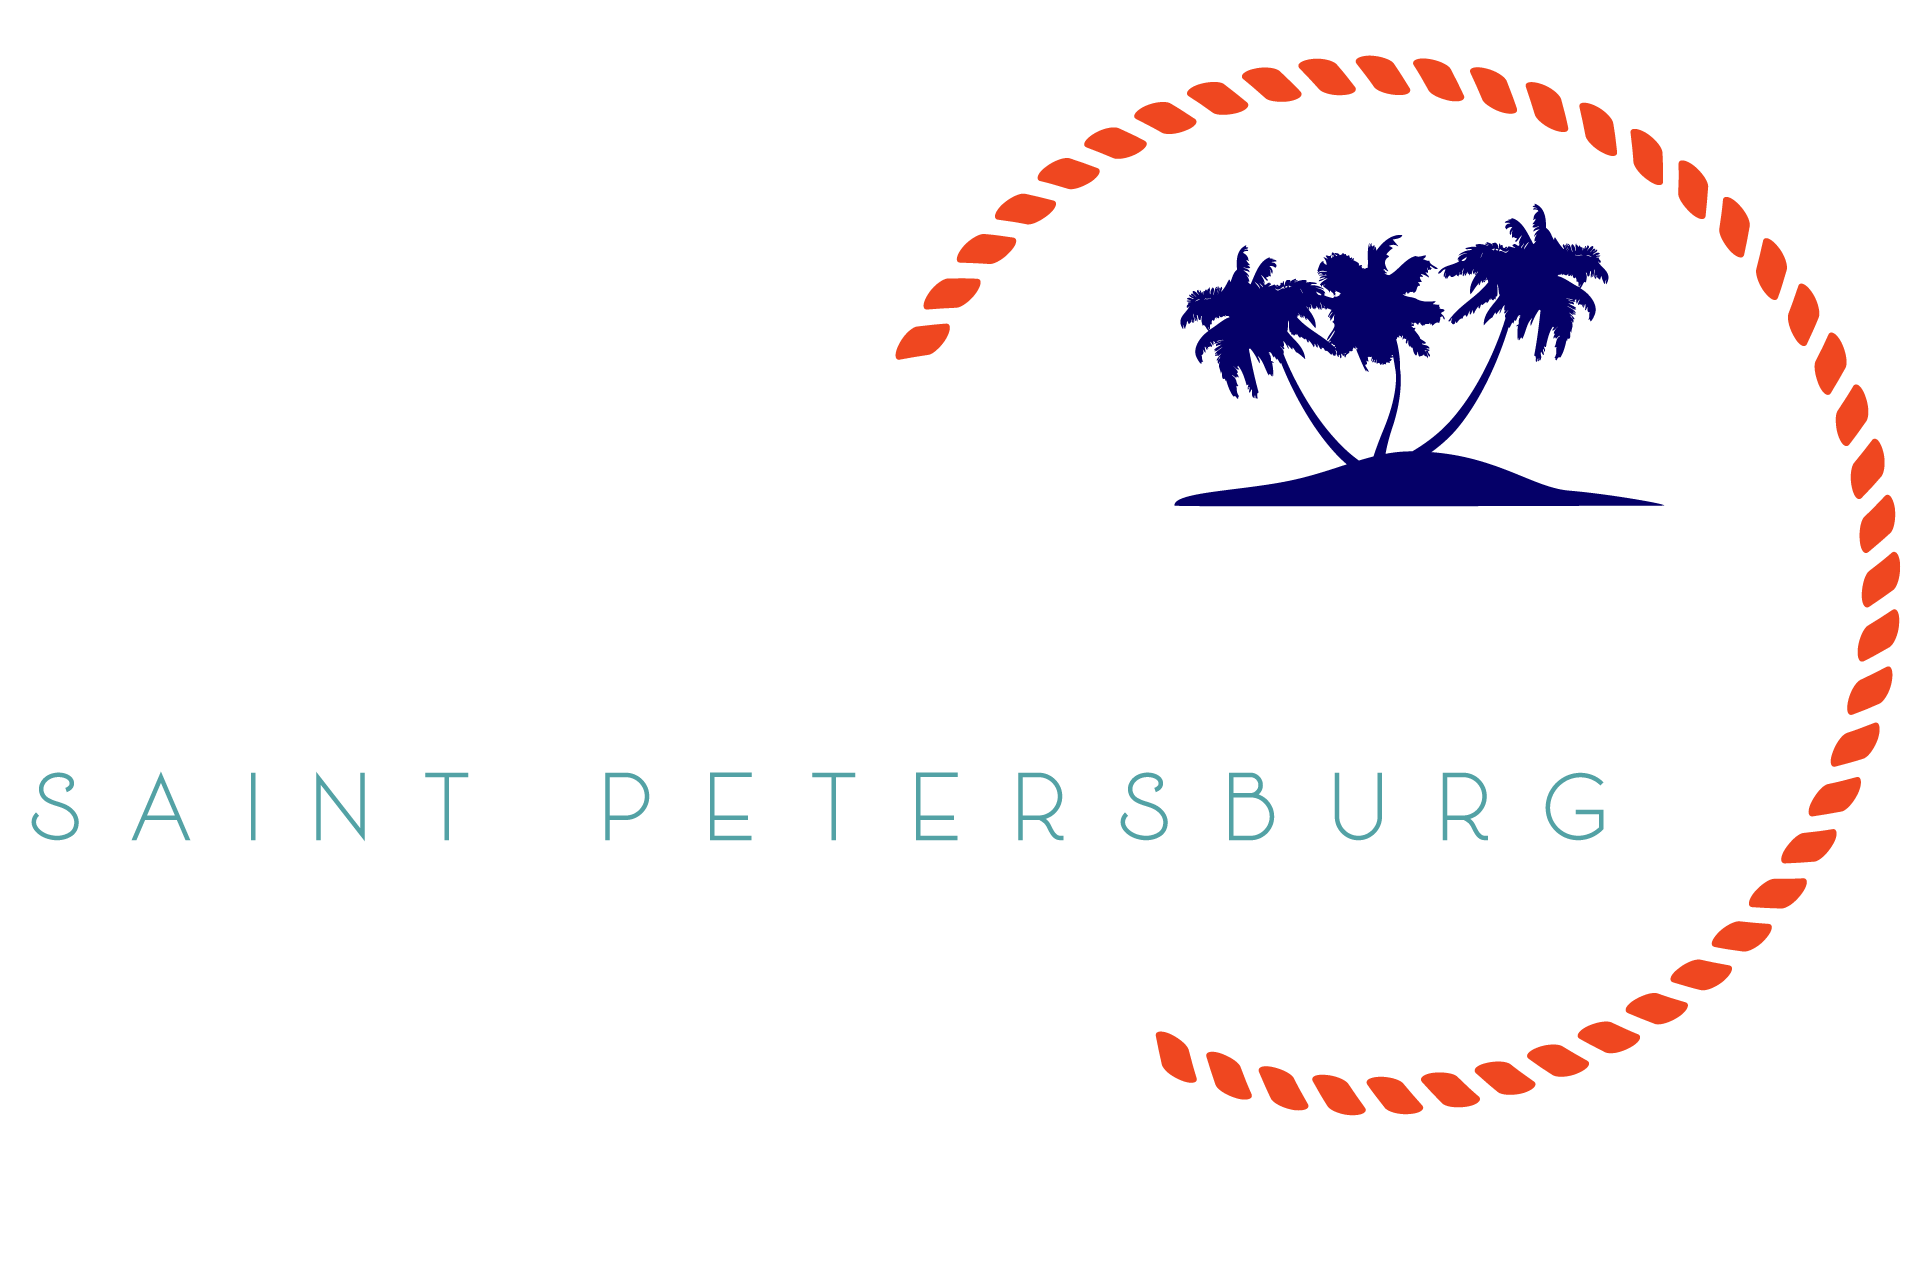 Riviera Bay Civic Association